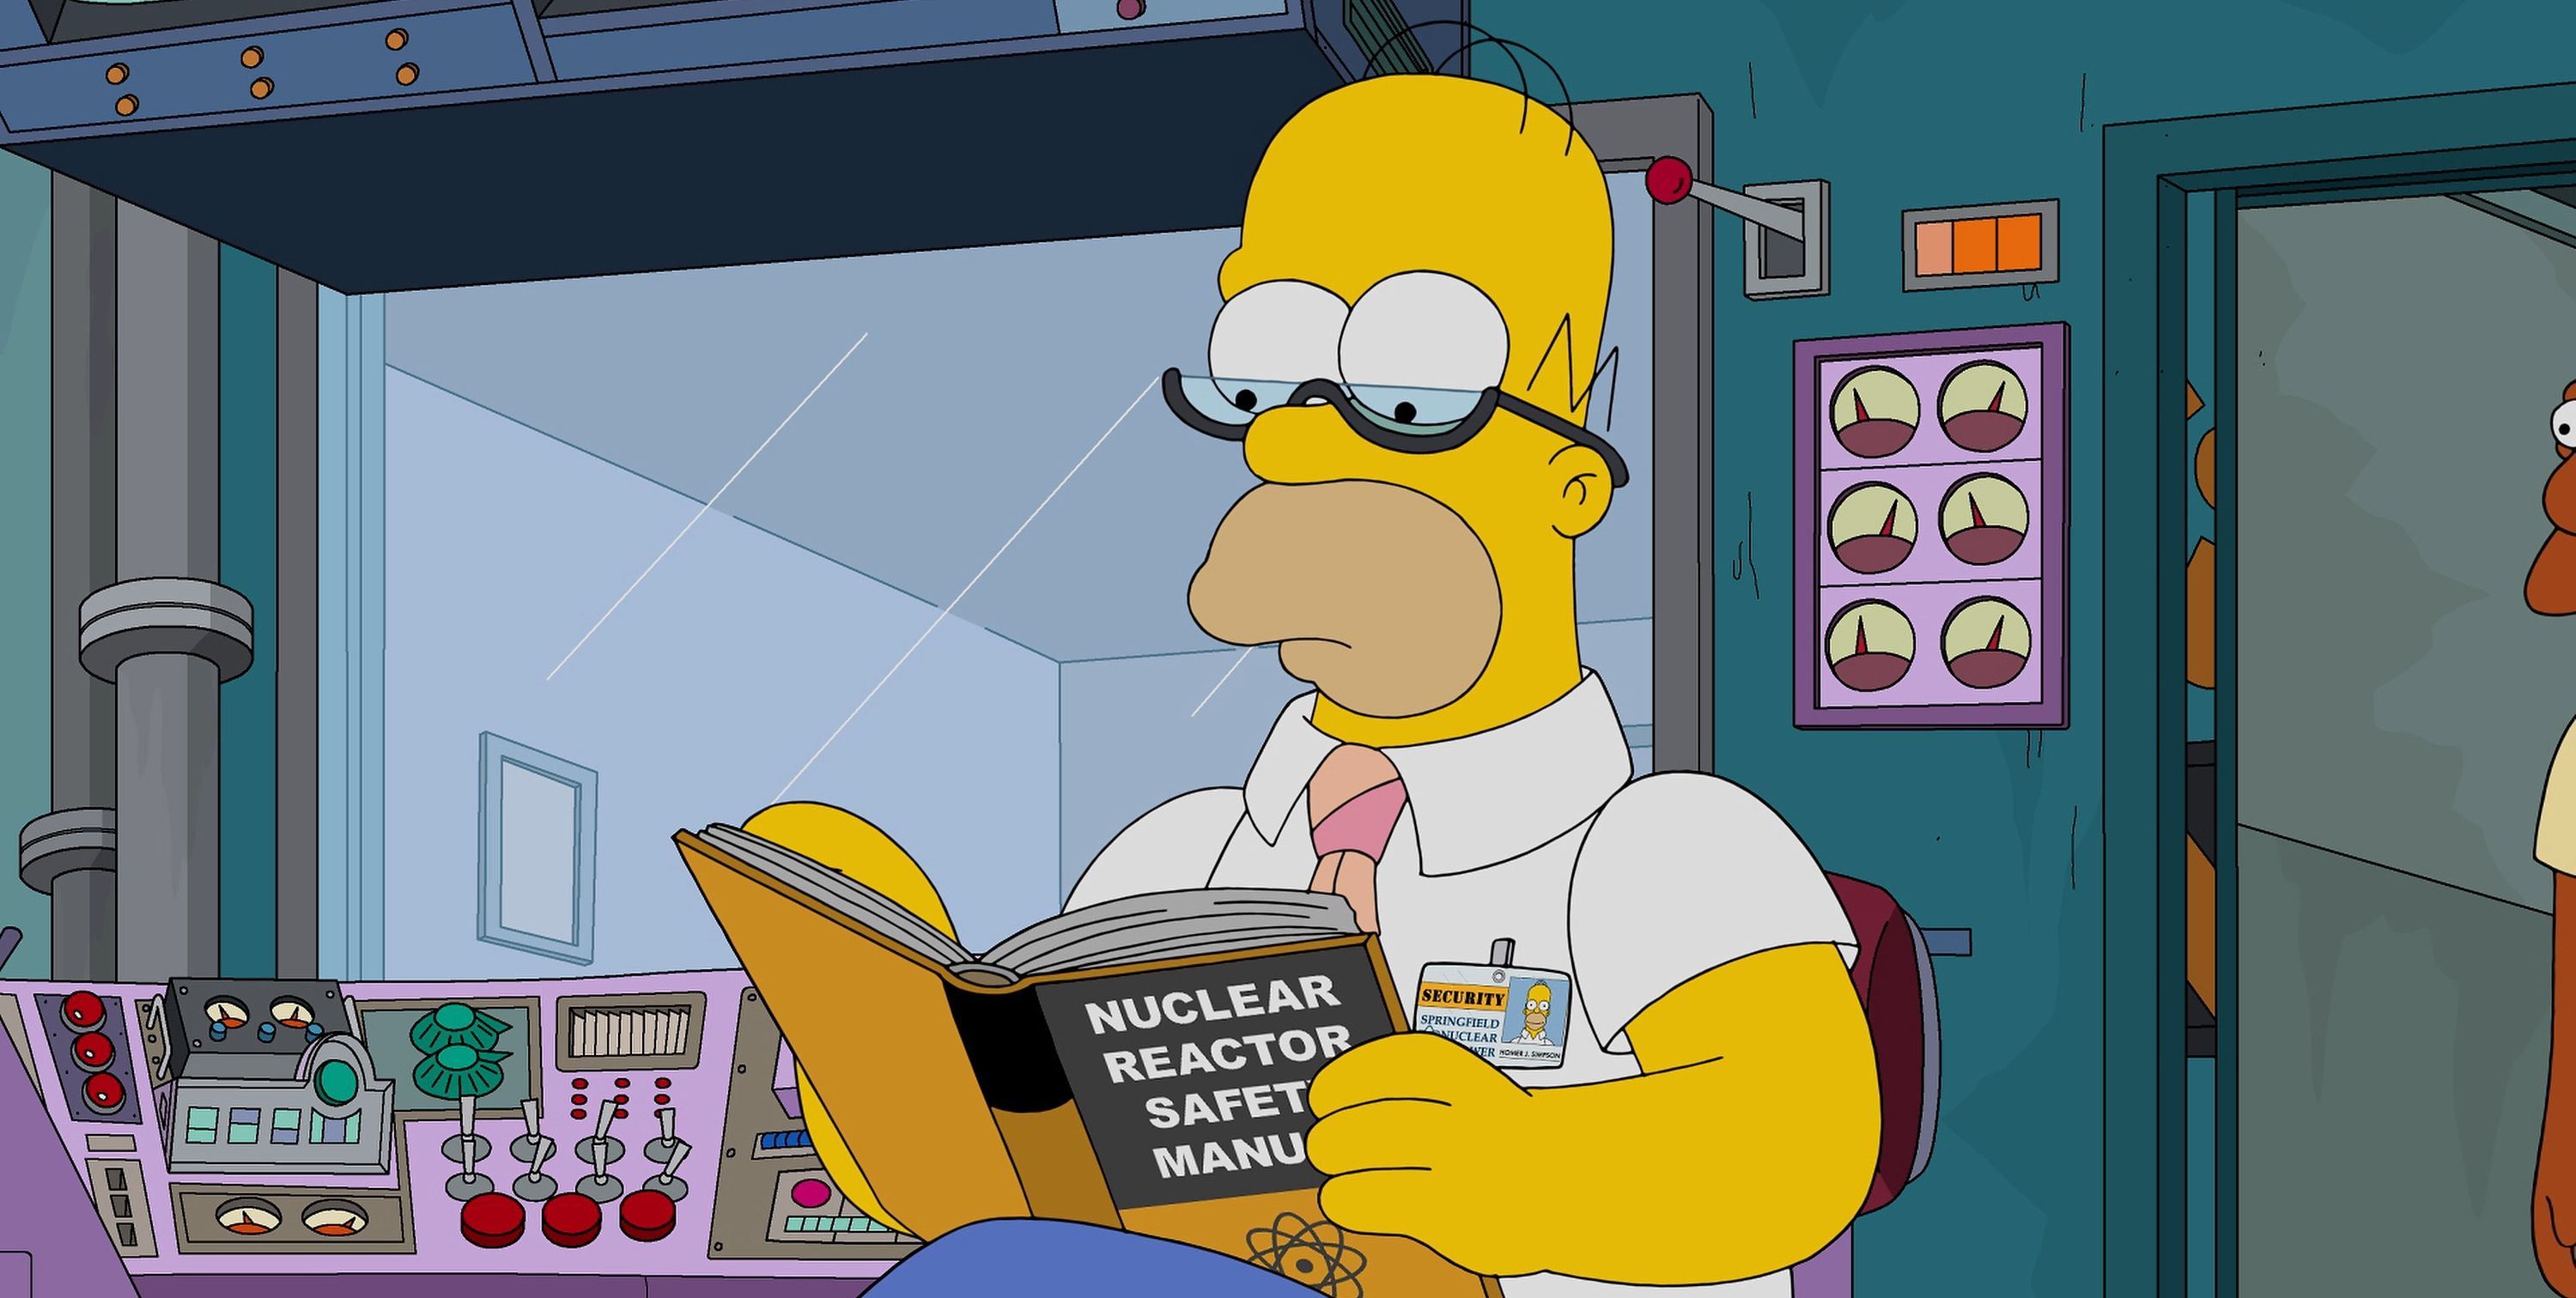 mejores frases Simpson, mejores frases Homer Simpson, mejores frases de Los Simpson, Homer filósofo, Homer Simpson lecciones, Homer Simpson lecciones de filosofía, mejores episodios Simpson, mejores episodios de Los Simpson, episodios de los Simpson, Simpson, Los Simpson, 30 aniversario Los Simpson, aniversario Simpson, aniversario Los Simpson, 30 años de Los Simpson, 30 temporadas de Los Simpson, 30 septiembre 2018, estreno nueva temporada Los Simpson, estreno 30 temporada Los Simpson, ver episodios de los Simpson, mejores momentos Simpson, cuál es tu capítulo favorito de Los Simpson, capítulo favorito Los Simpson